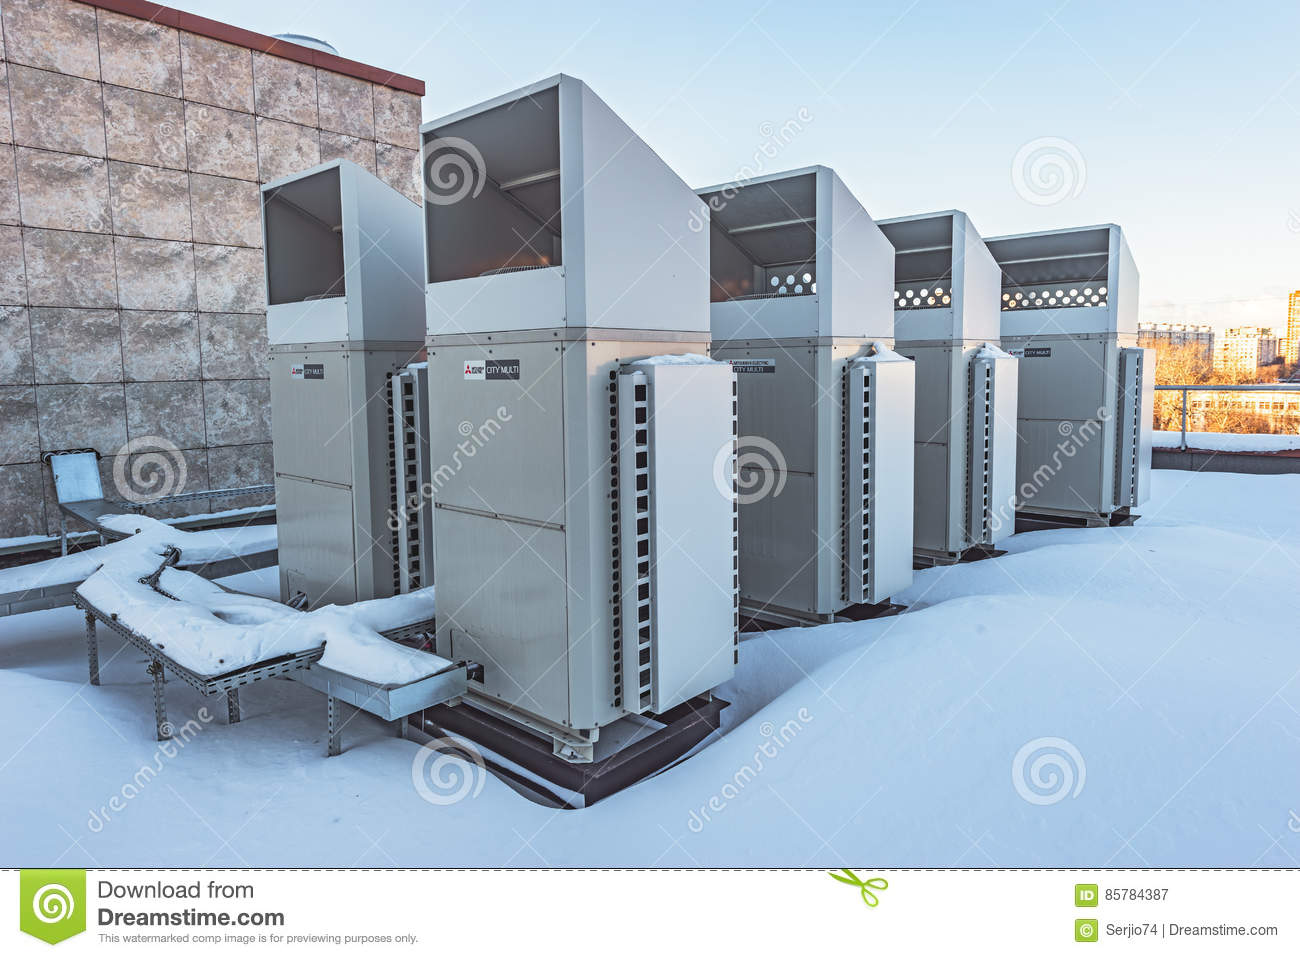 Installation of air conditioning in Moscow 51